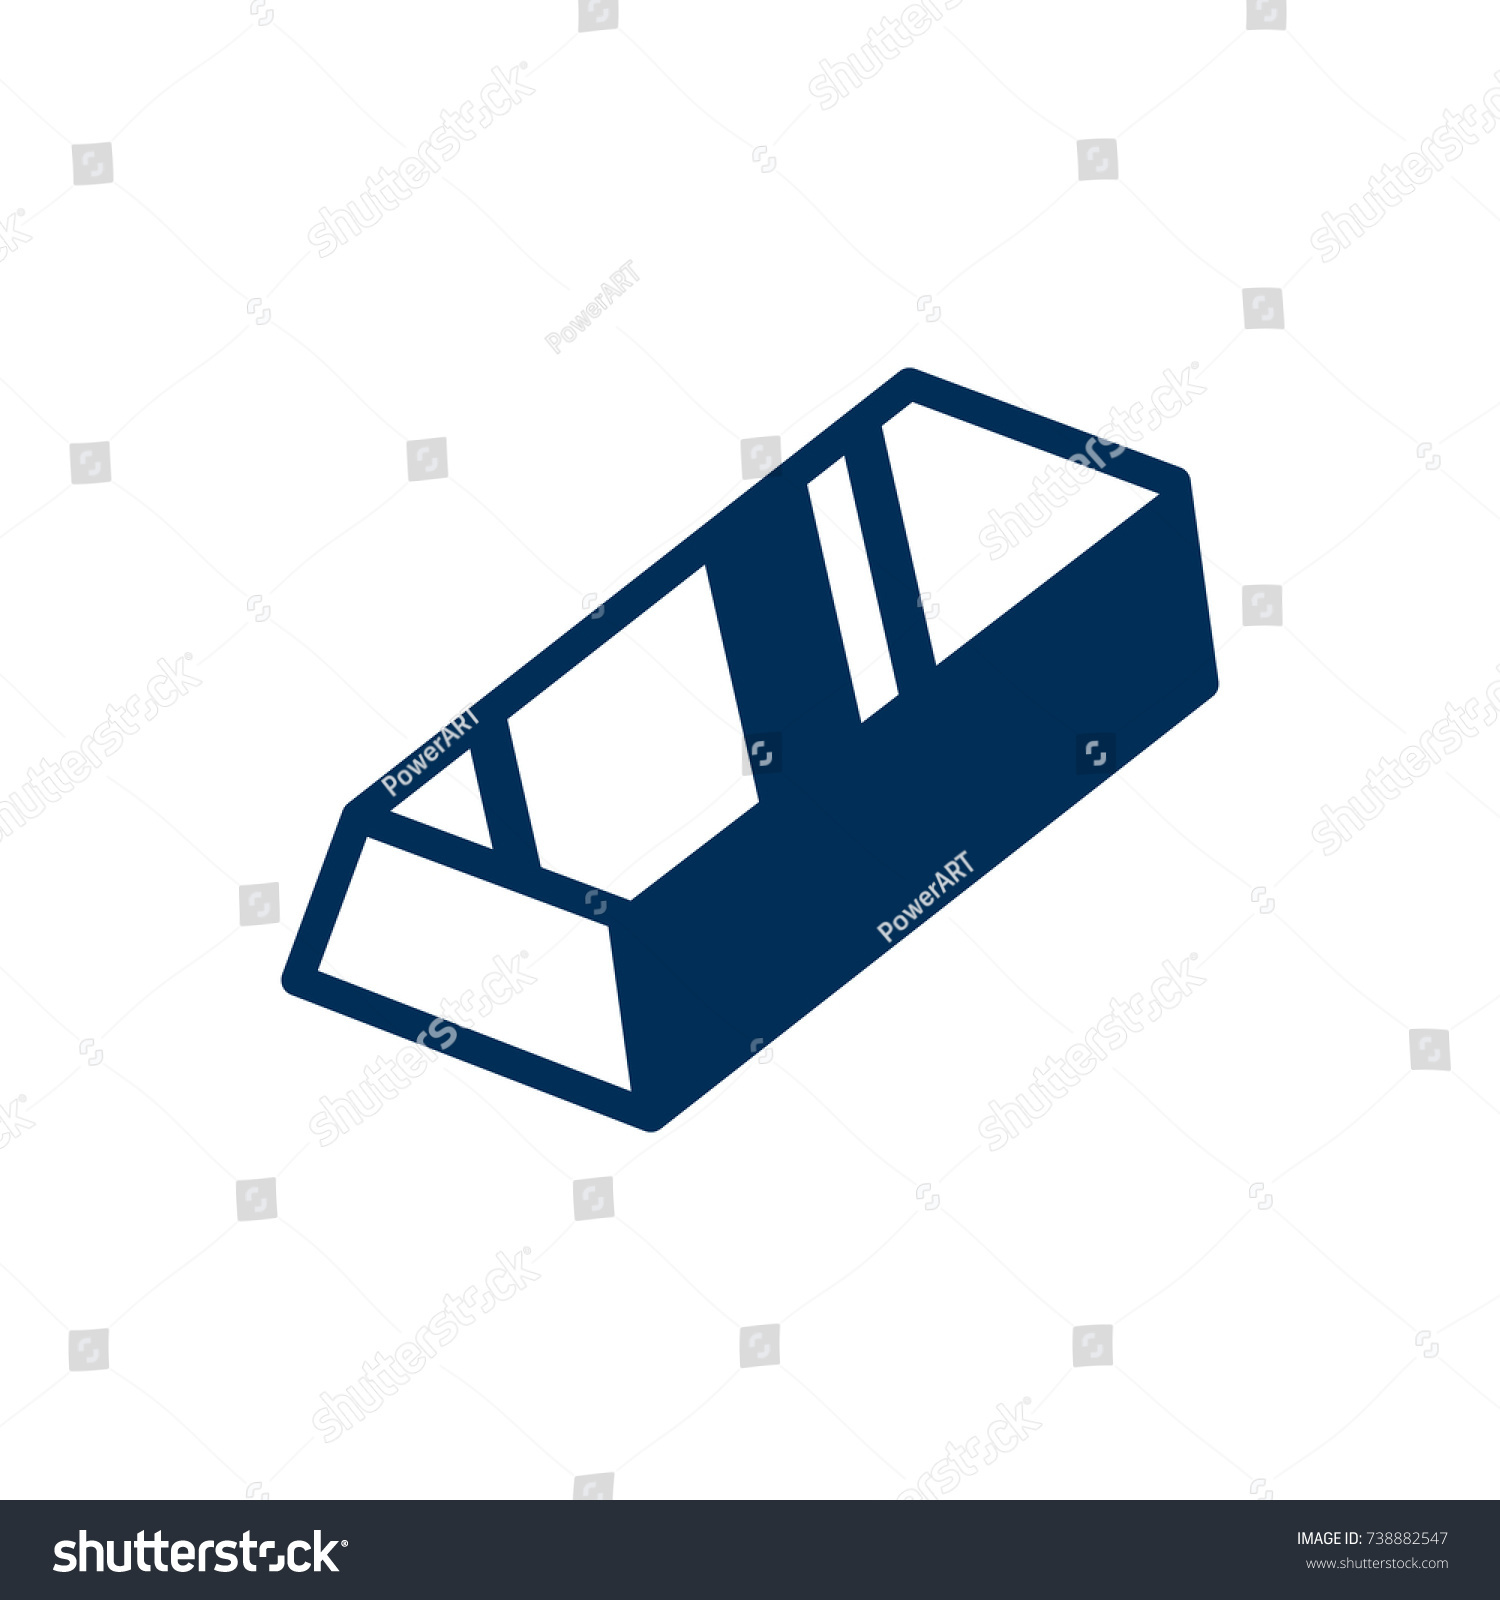 Isolated gold bar icon symbol on stock vector 738882547 shutterstock isolated gold bar icon symbol on clean background vector bullion element in trendy style buycottarizona Image collections